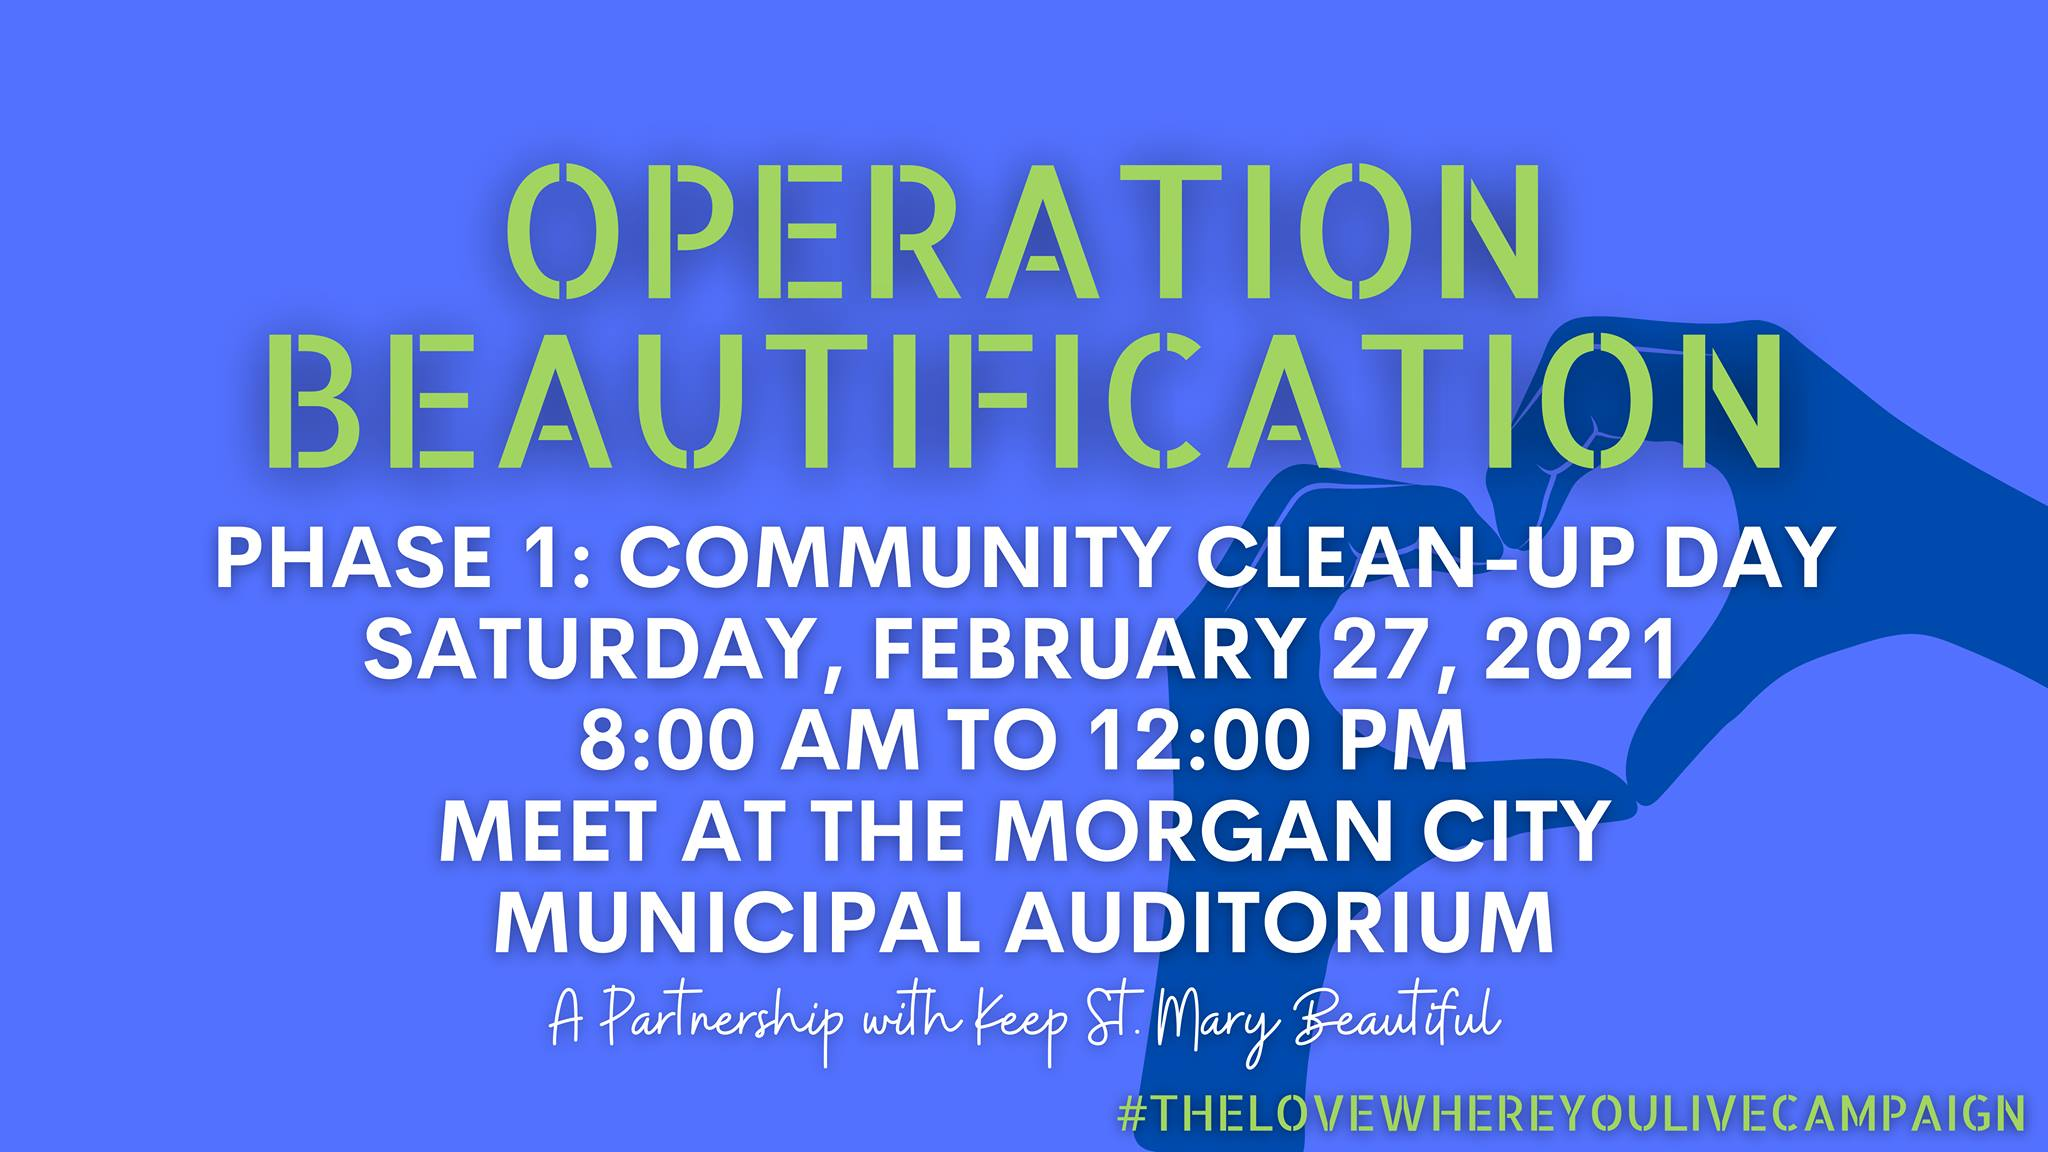 Operation Beautification